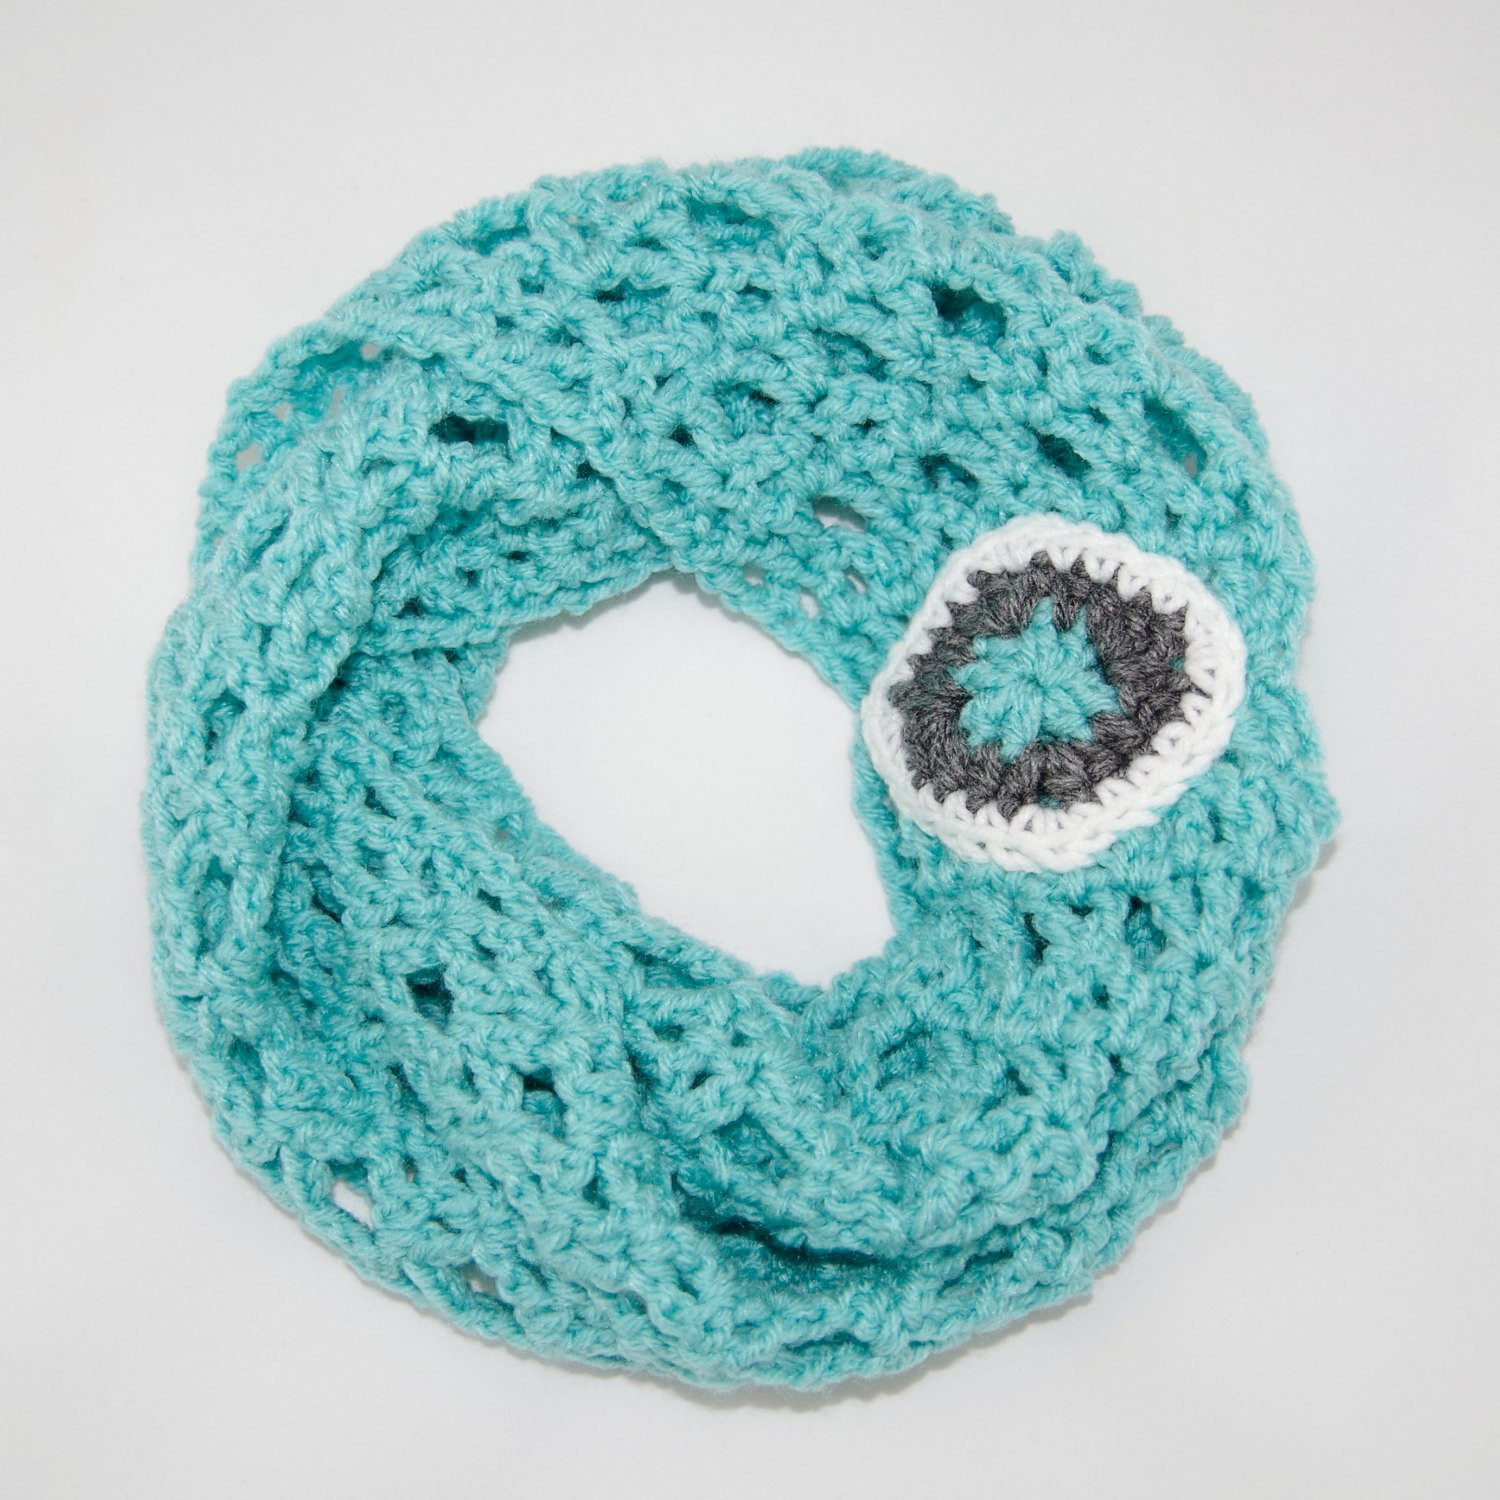 Elegant Crochet Pattern Diamond Lace Infinity Scarf Girls to Lace Infinity Scarf Of Charming 45 Ideas Lace Infinity Scarf